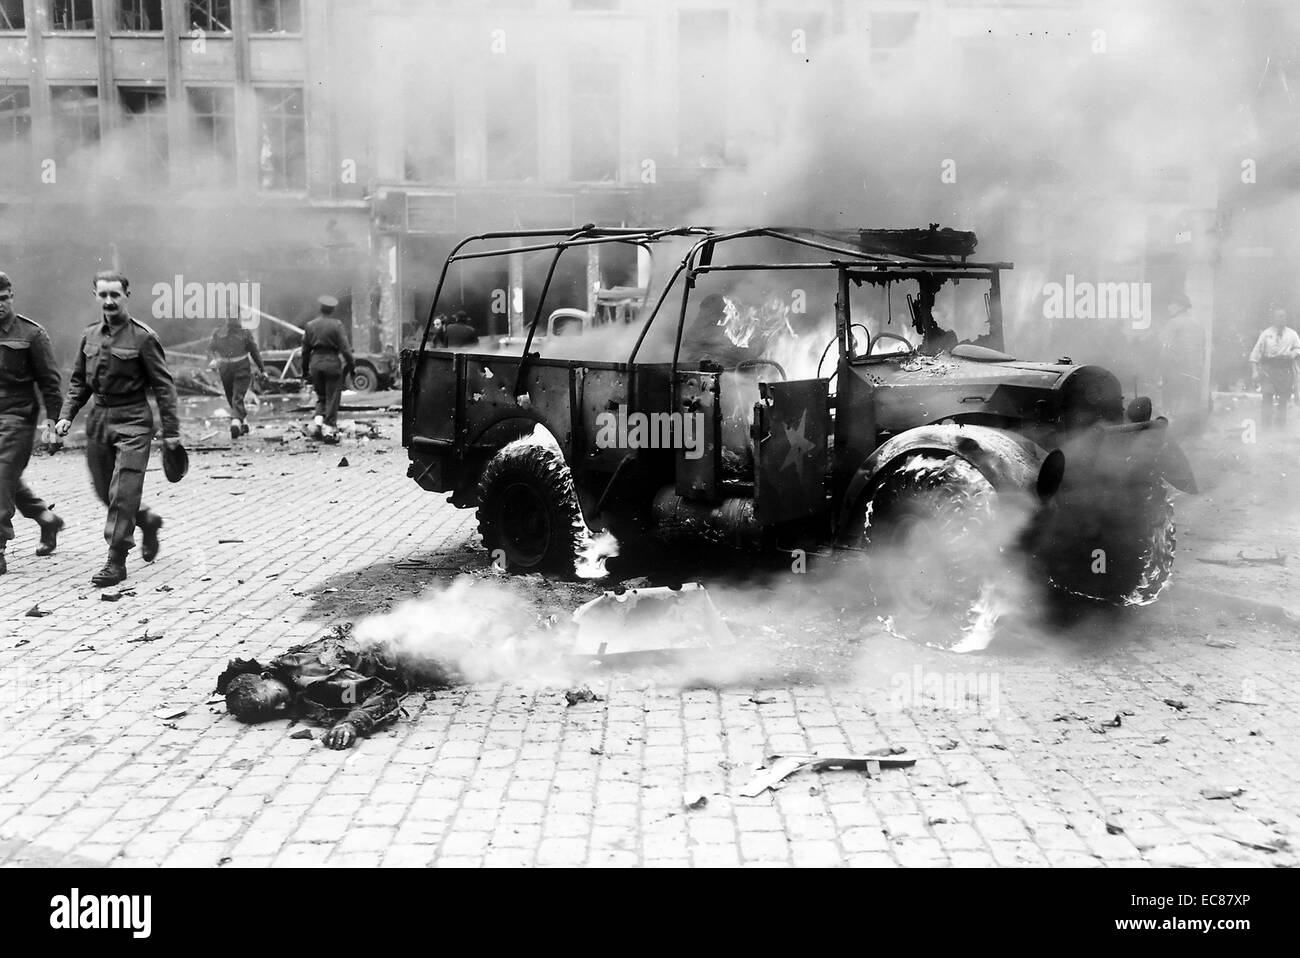 Photograph of the death and damaged caused by a German V-2 rocket exploding on a main intersection. Antwerp, Belgium. - Stock Image